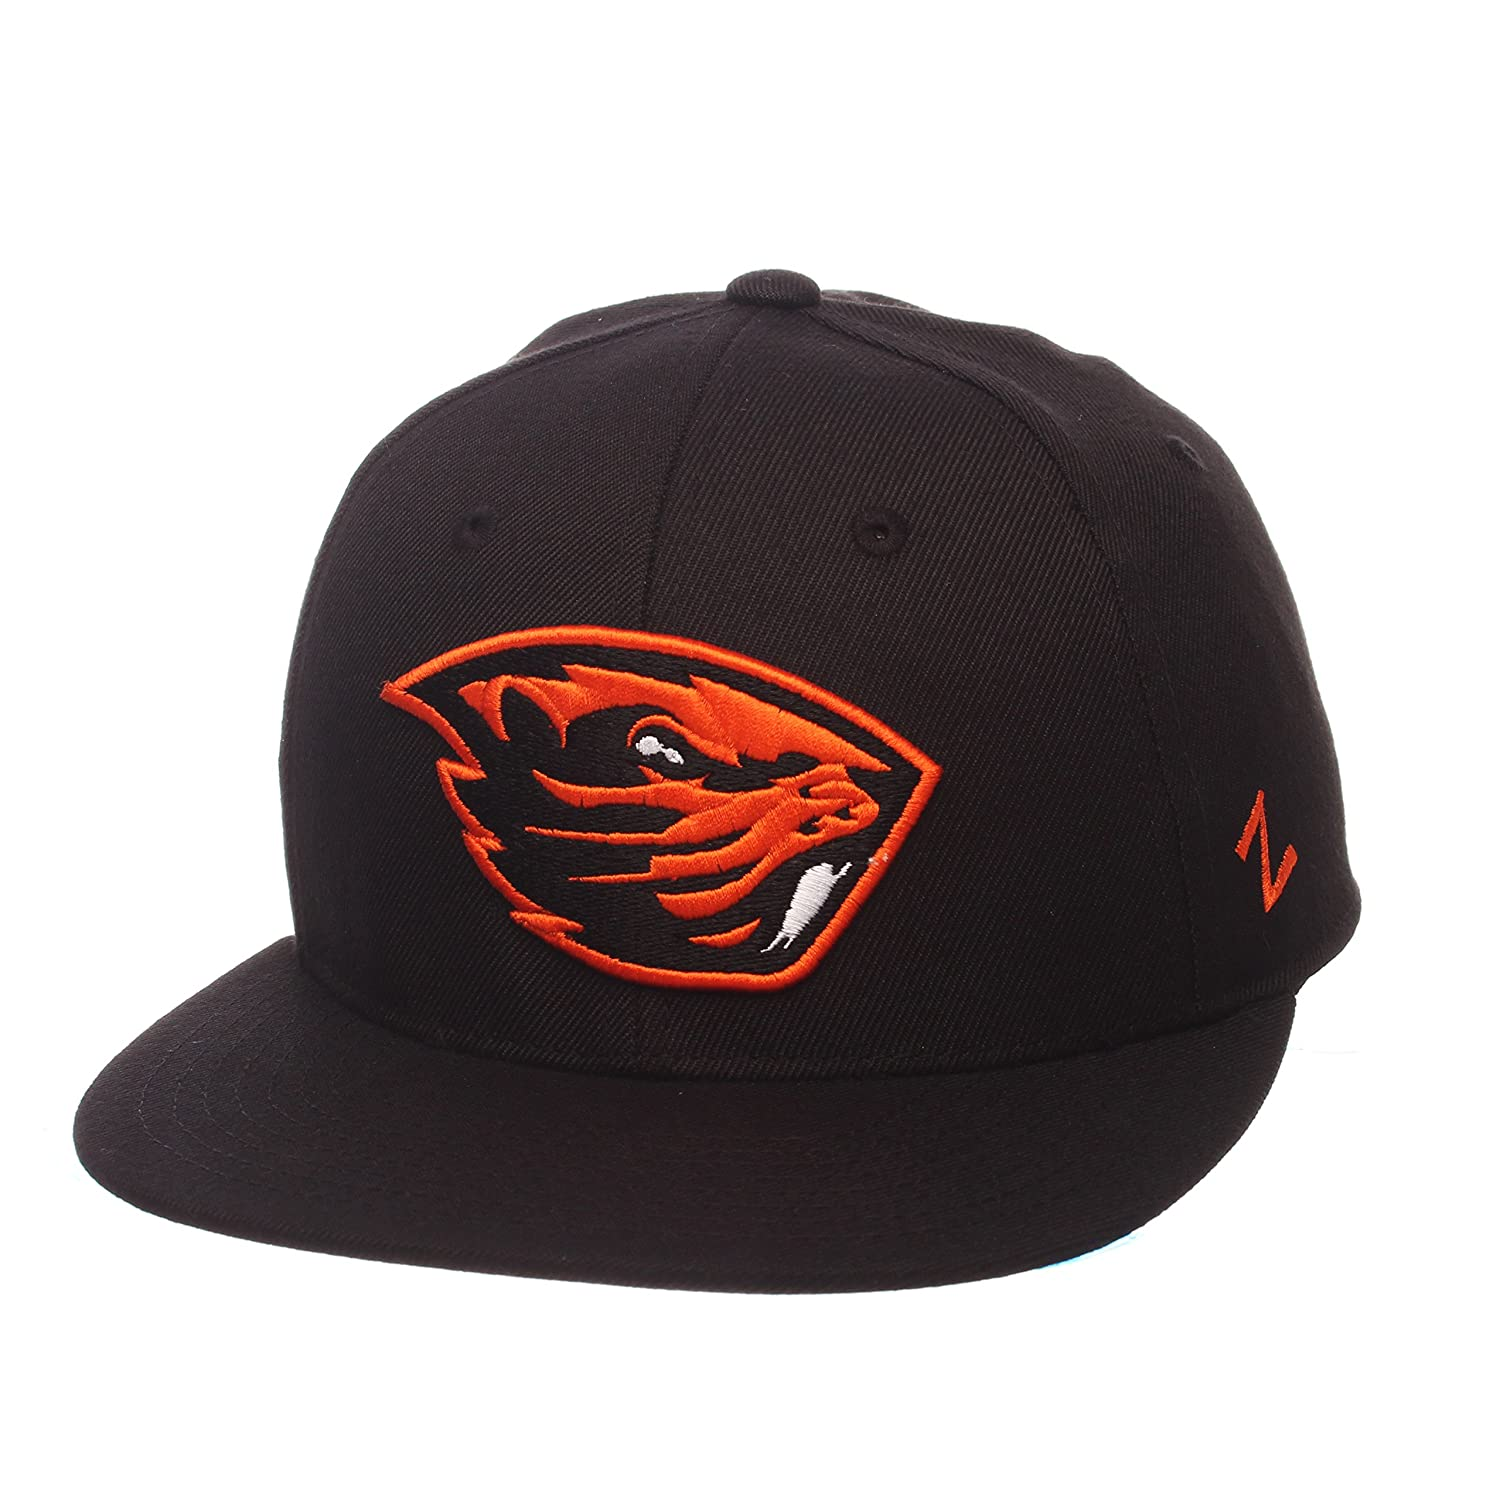 351ac1292a3f5 Amazon.com   ZHATS NCAA Mens M15 Fitted Hat   Sports   Outdoors